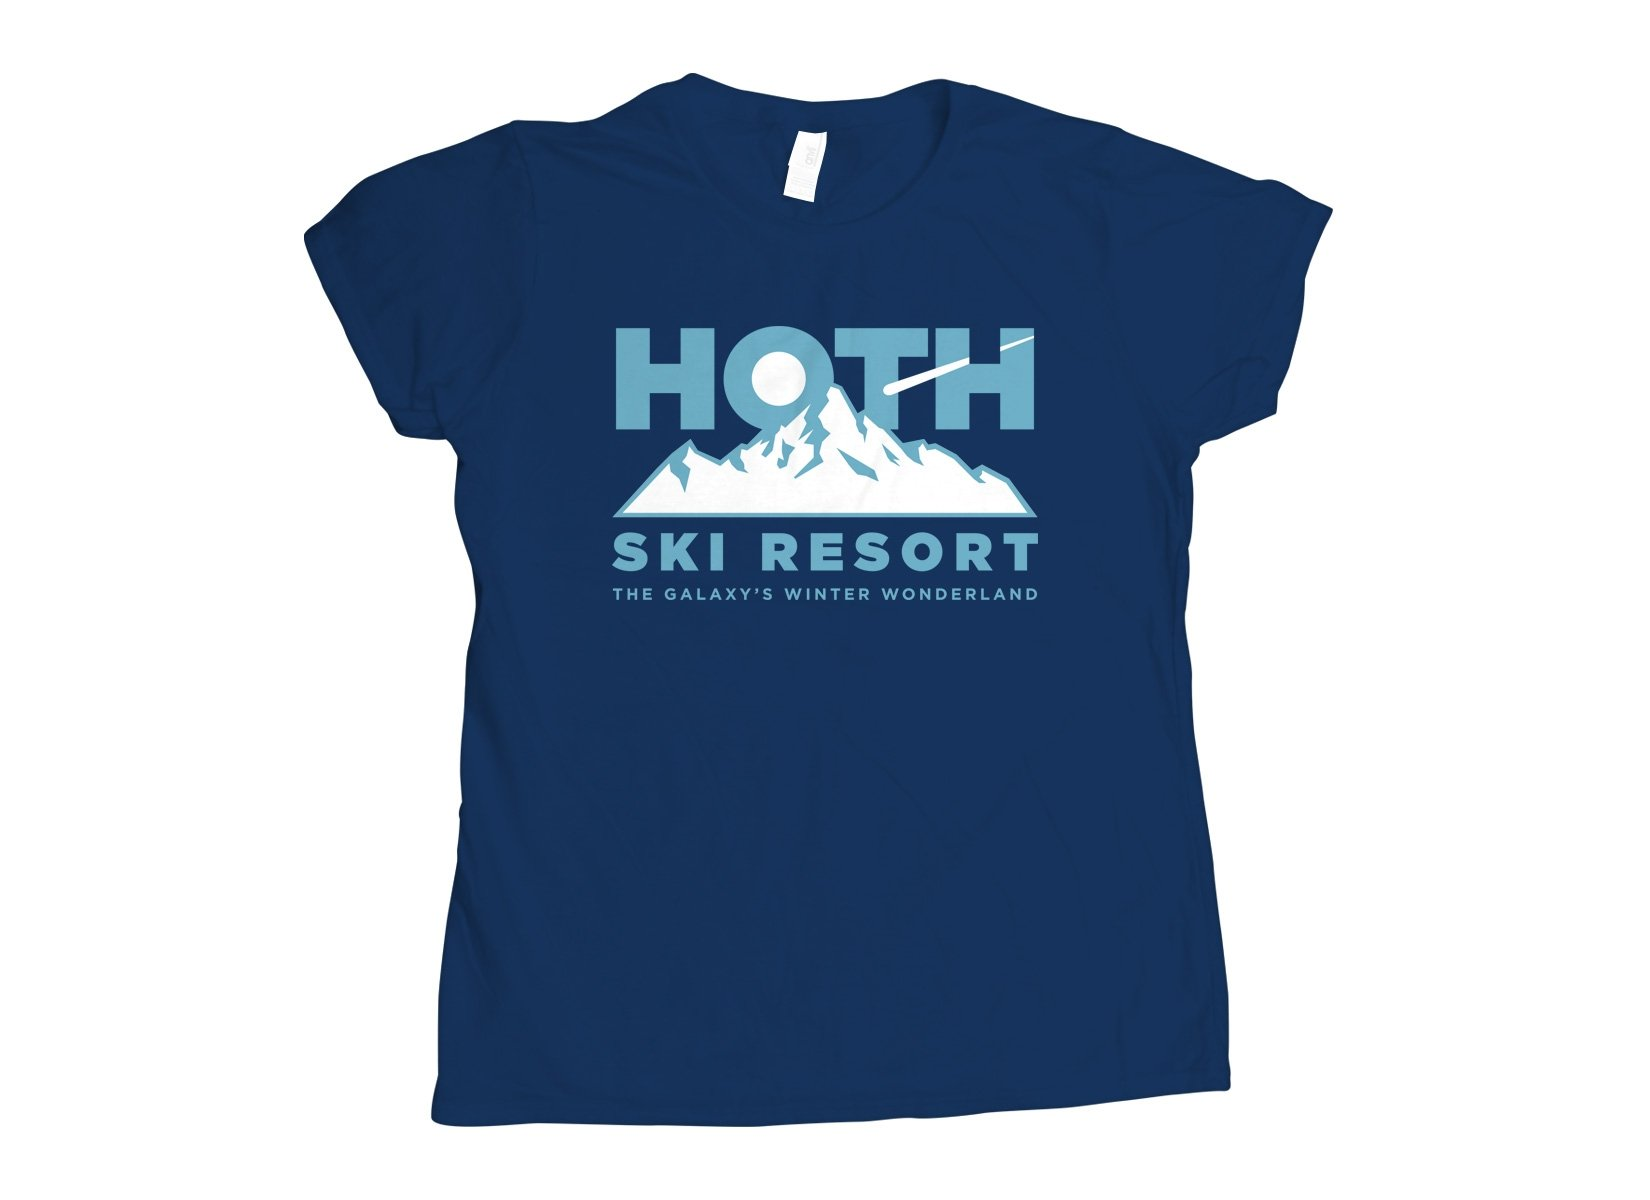 Hoth Ski Resort on Womens T-Shirt